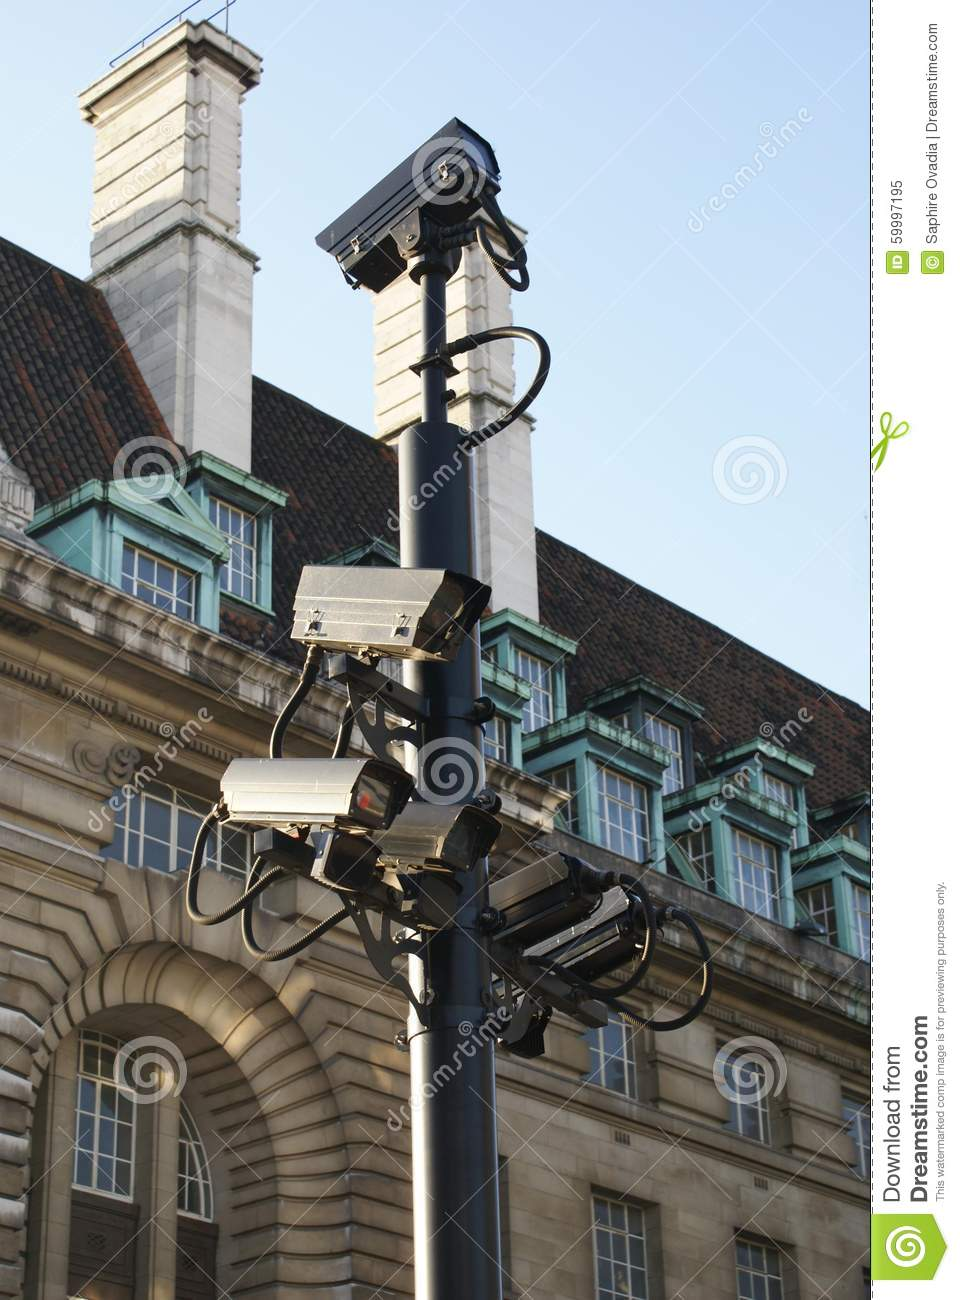 using cameras and surveillance in nursing The issue of cctv cameras in care homes tends to arouse a plethora of  polarised opinion, with families of abuse victims calling for widespread.